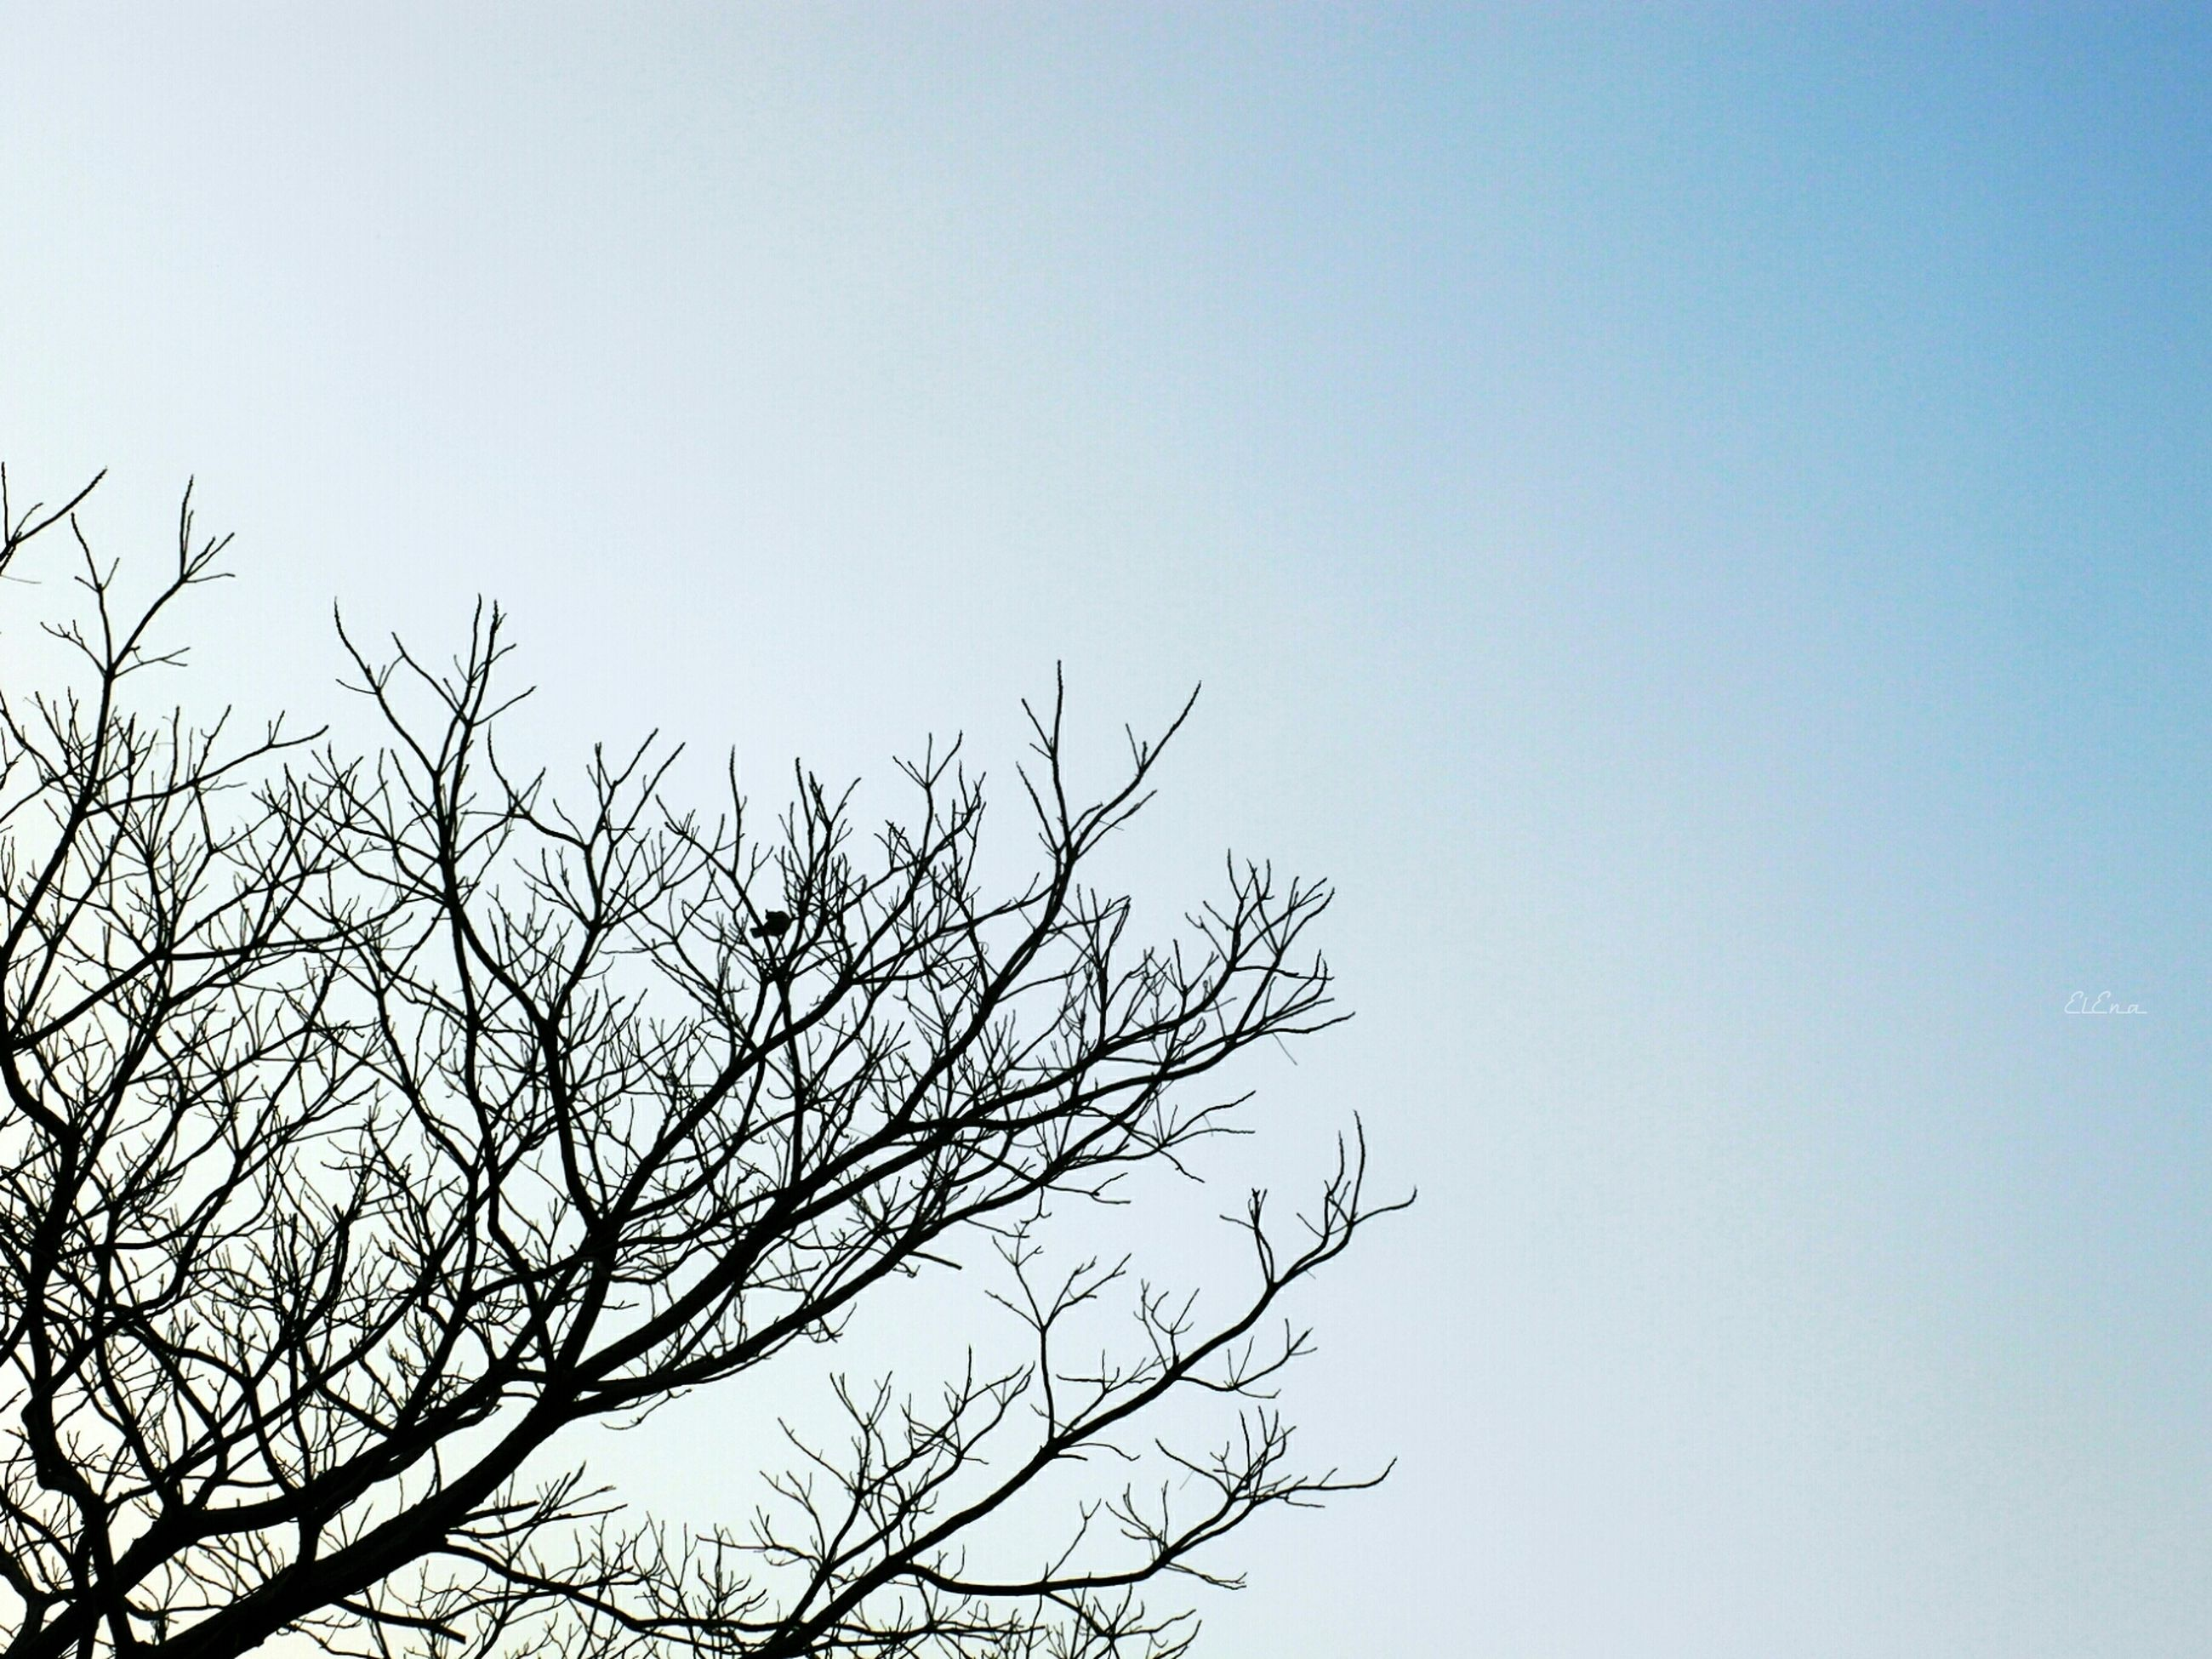 clear sky, low angle view, branch, bare tree, tree, copy space, nature, tranquility, beauty in nature, blue, scenics, growth, outdoors, high section, no people, day, silhouette, sky, tranquil scene, treetop